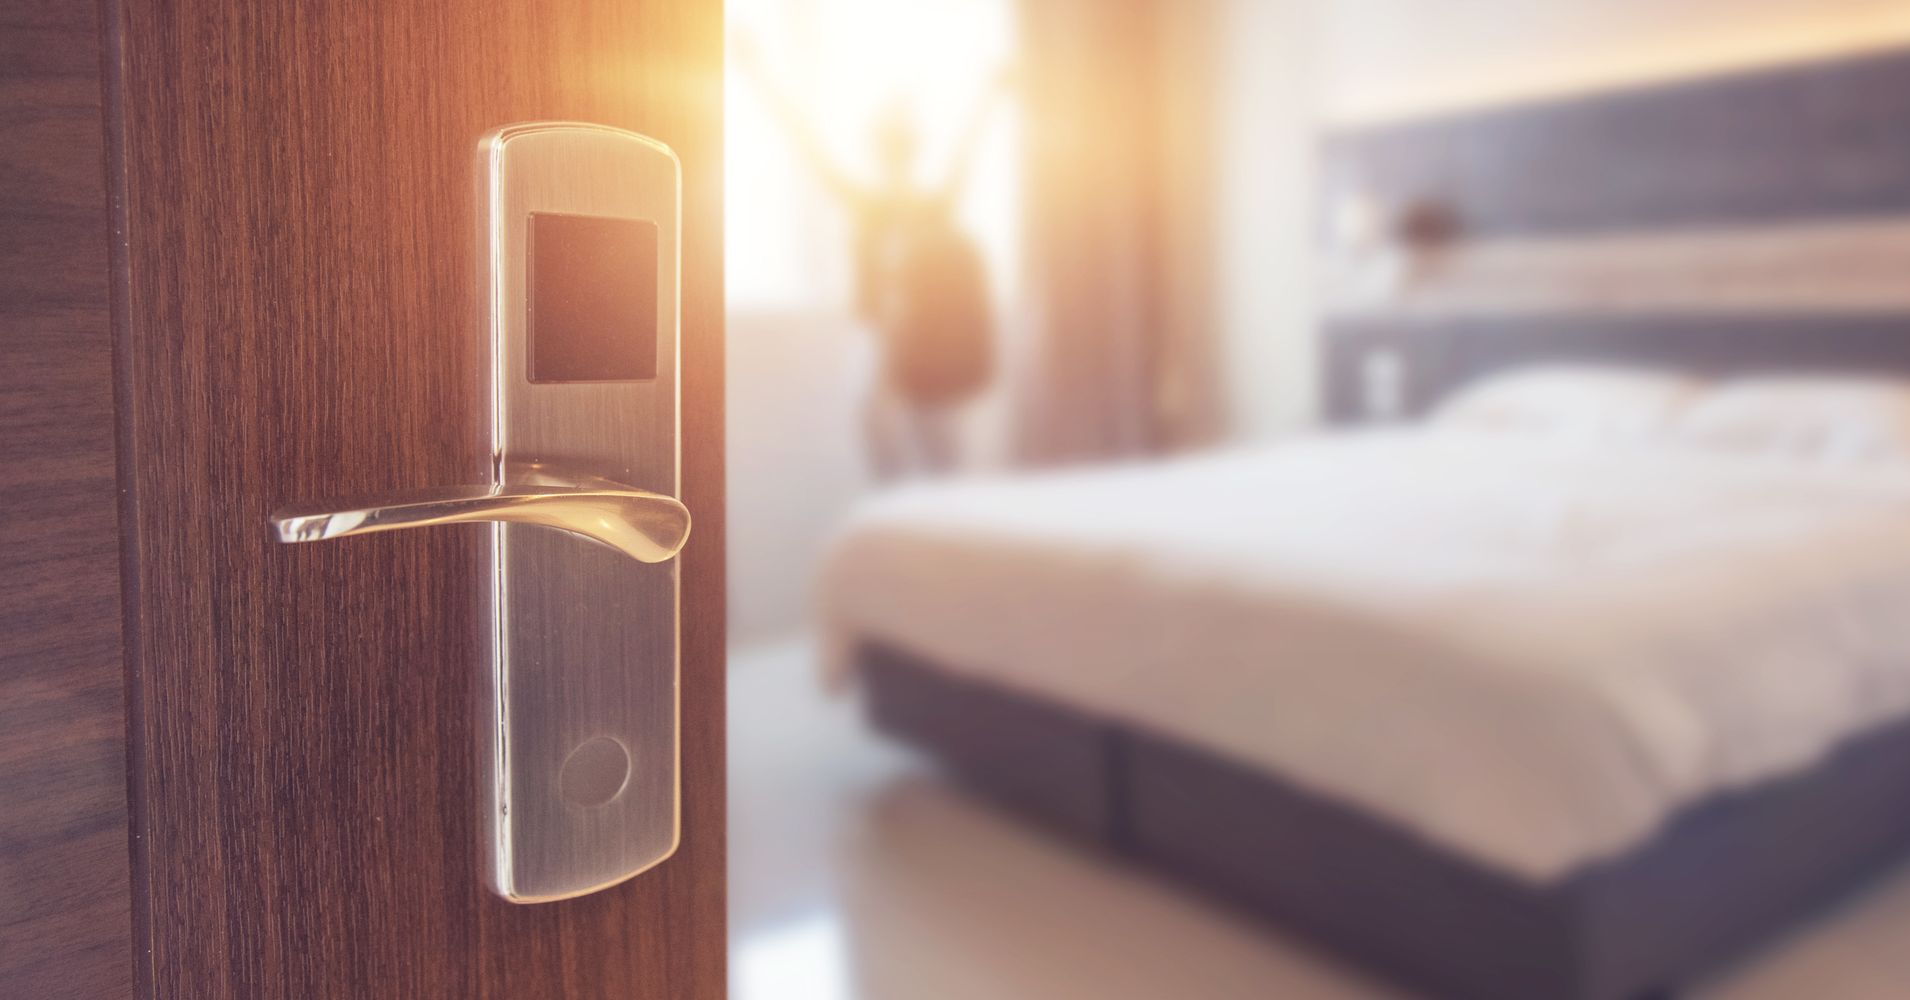 There S A Secret Code Thieves Use To Break Into Hotel Room